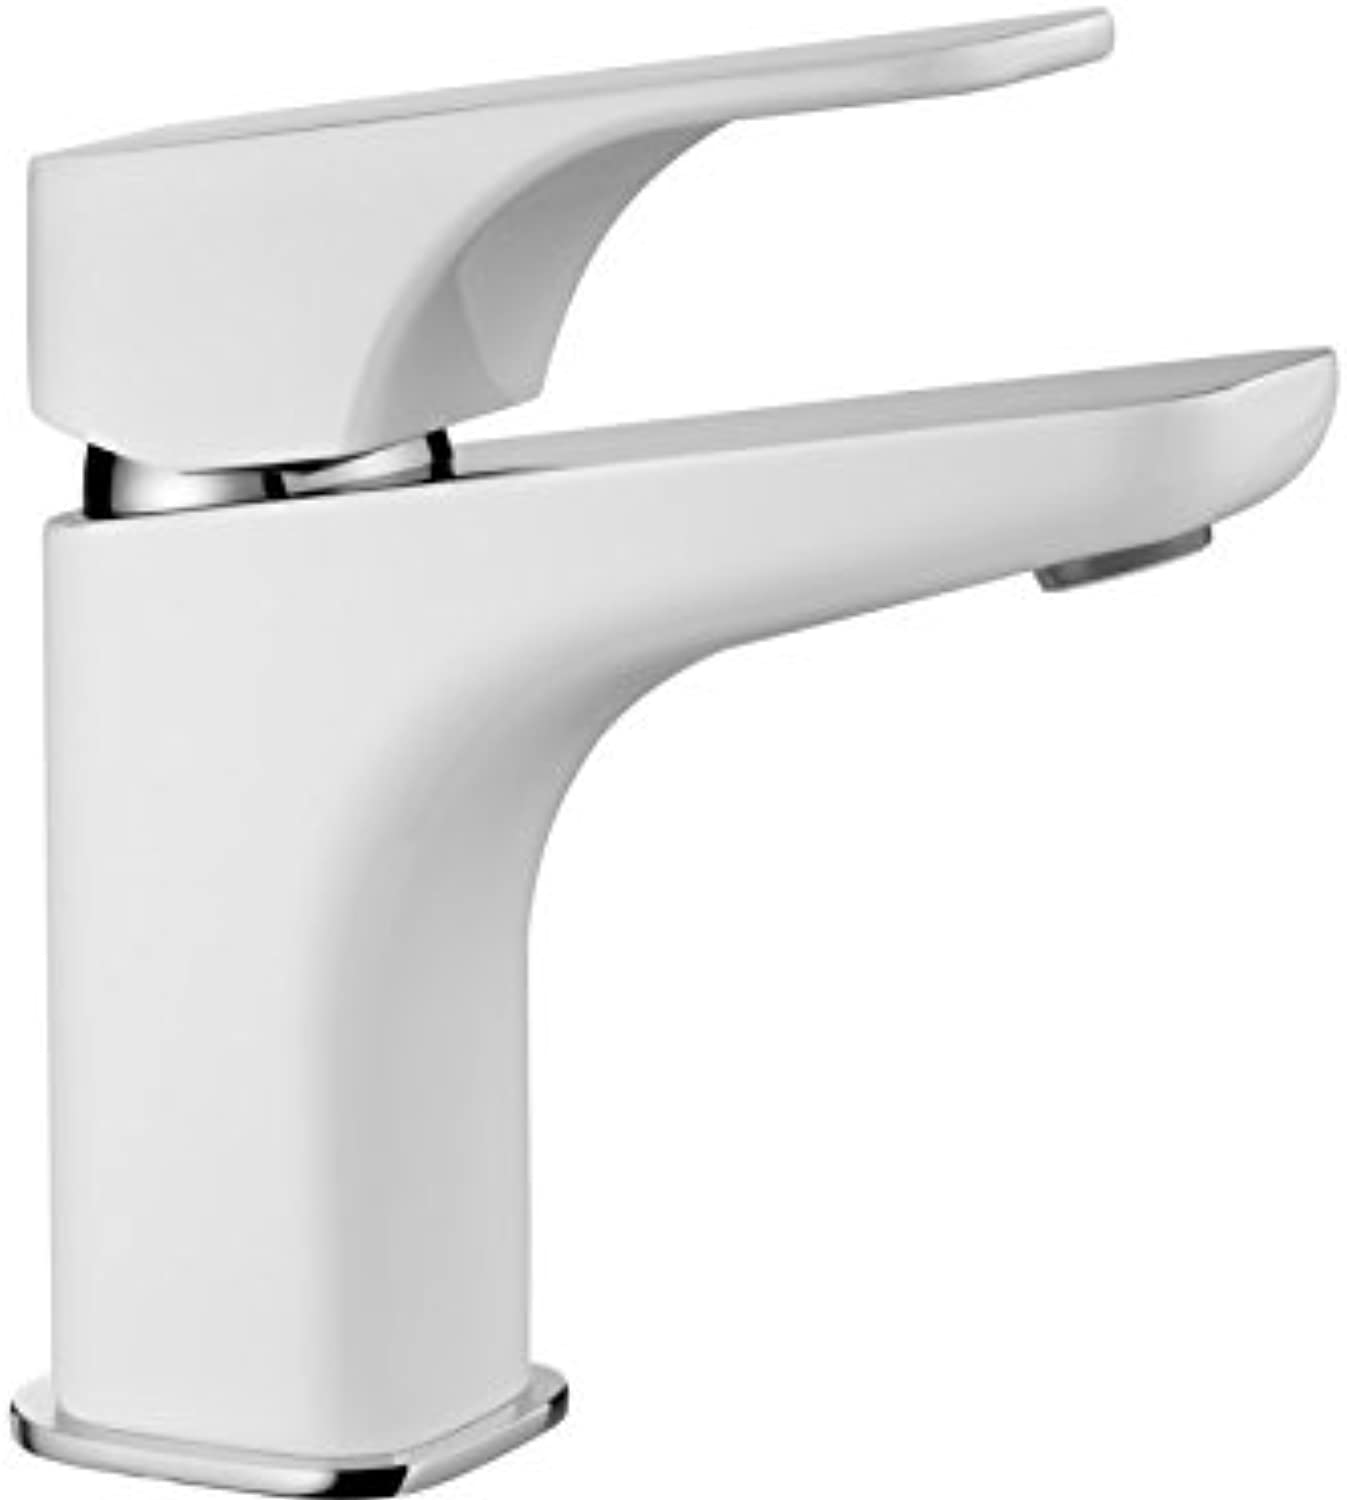 High Quality Handle Basin Mixer Tap High Pressure Basin Mono Mixer Bathroom Tap White Gloss?–?New Product?–?Model  Hiazynt Granite